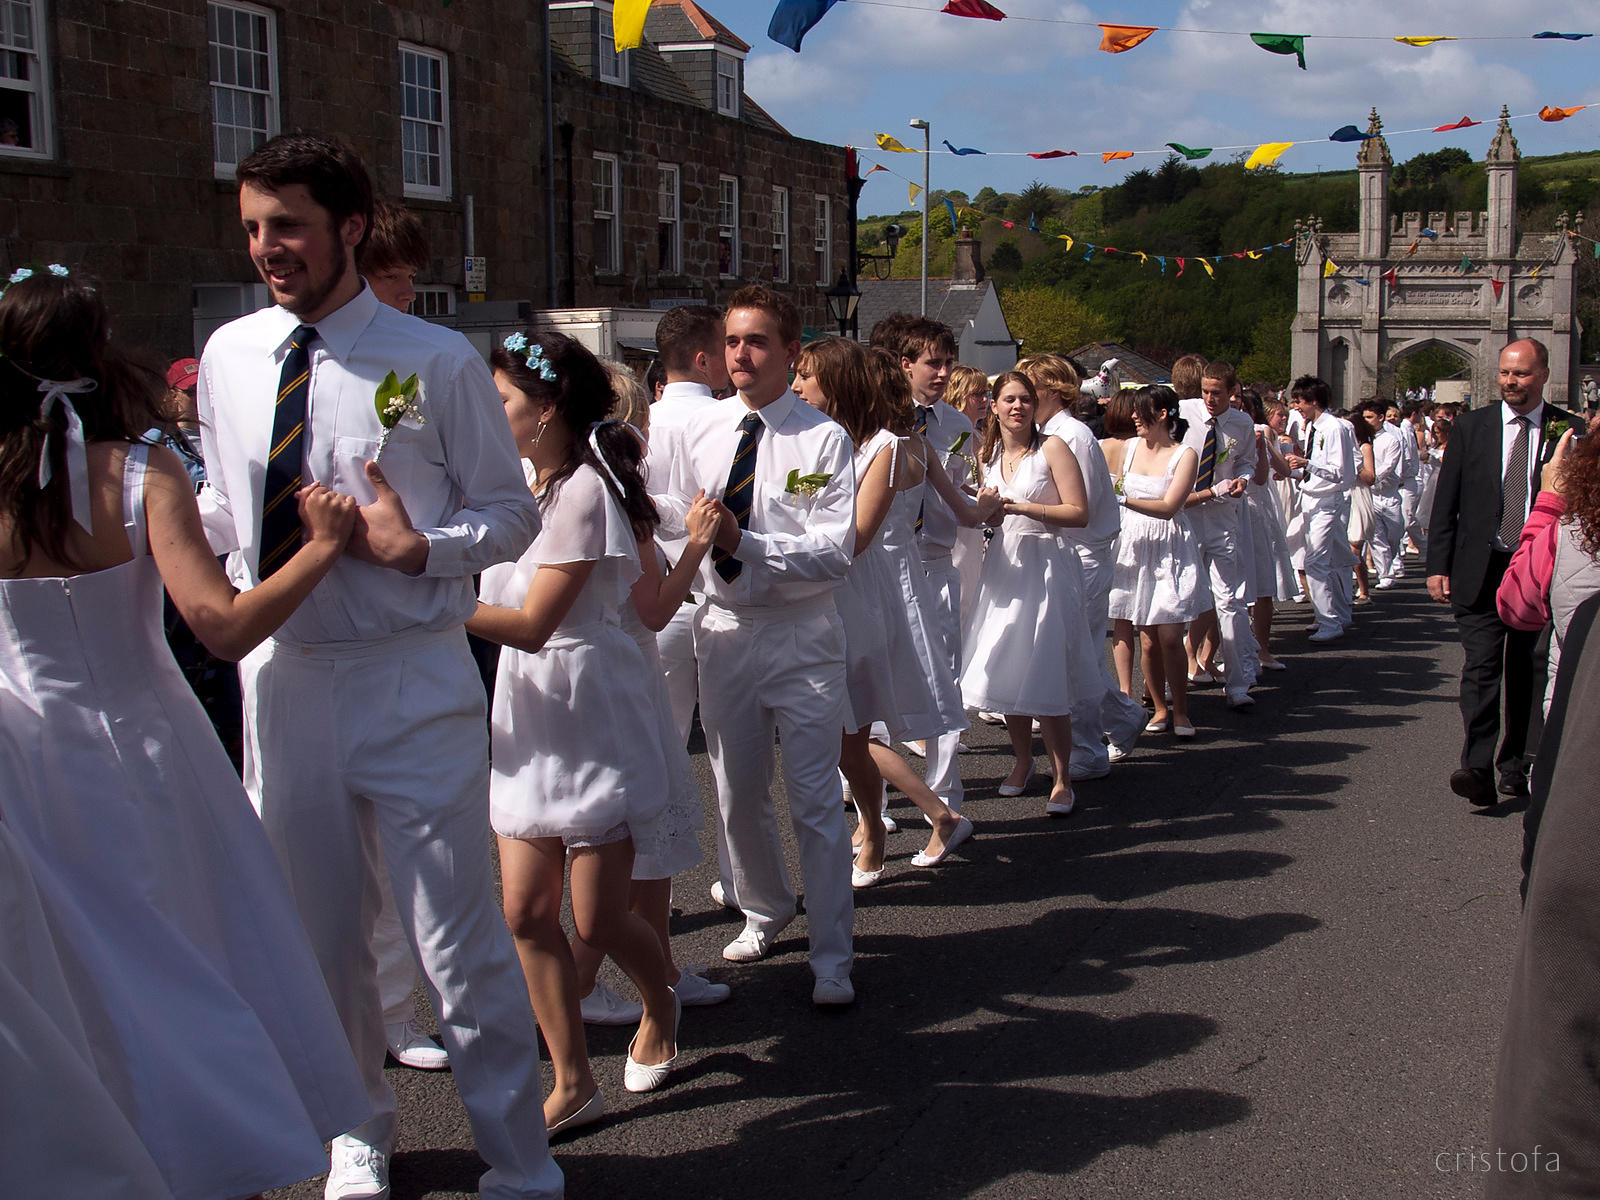 all ages take part in the Helston Flora Day parade